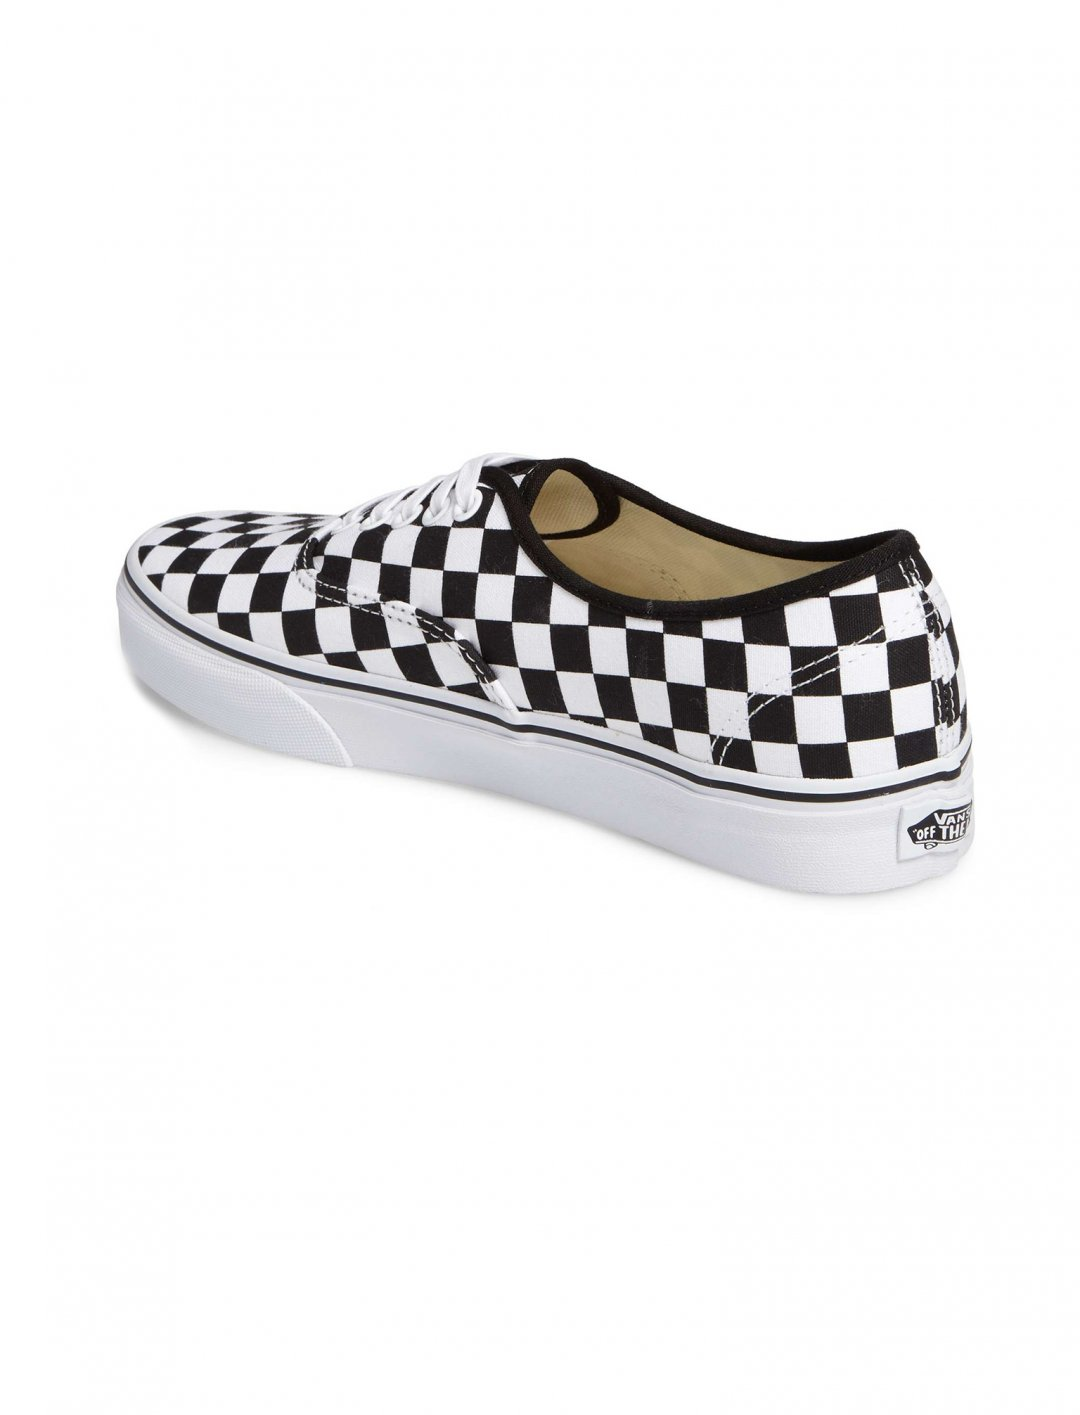 "Vans Authentic Sneaker {""id"":12,""product_section_id"":1,""name"":""Shoes"",""order"":12} Vans"